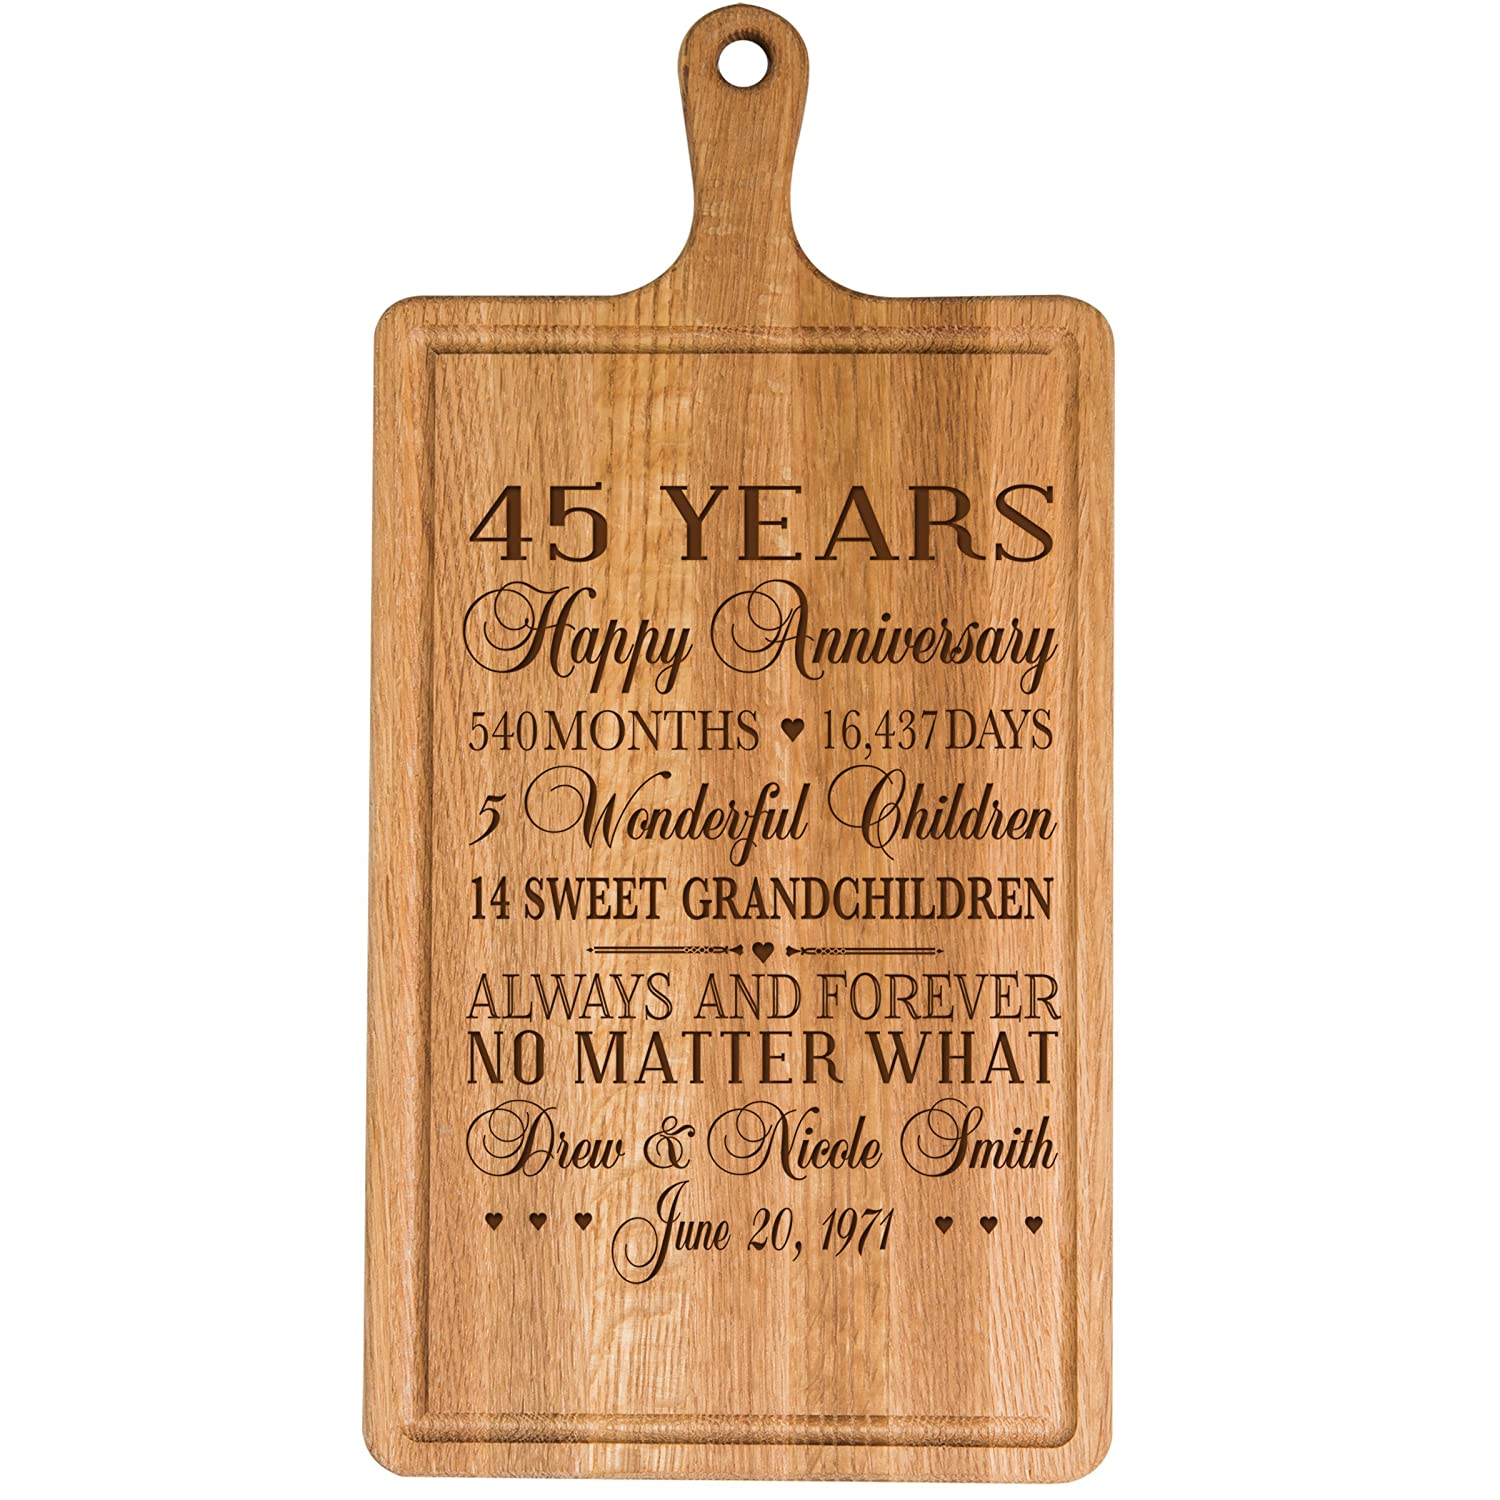 Personalized 45th年記念日のギフト彼女妻夫Couple Cheese Cutting BoardでカスタマイズYear Established日付to Remember for Wedding Gift Ideas by Dayspringマイルストーン B06XH643JB